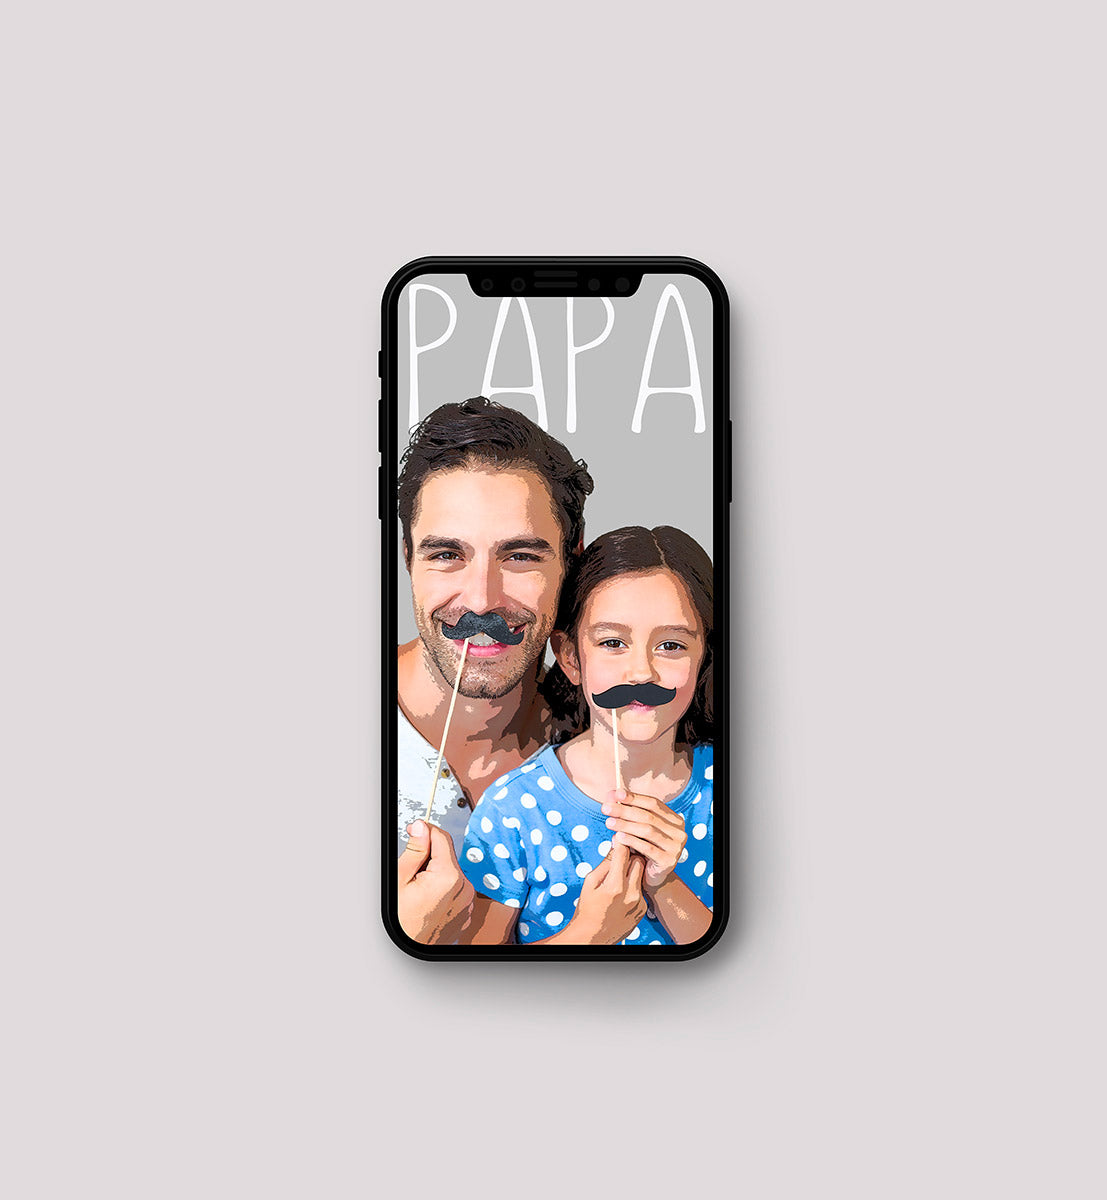 Pop art of dad and daughter on iPhoneX